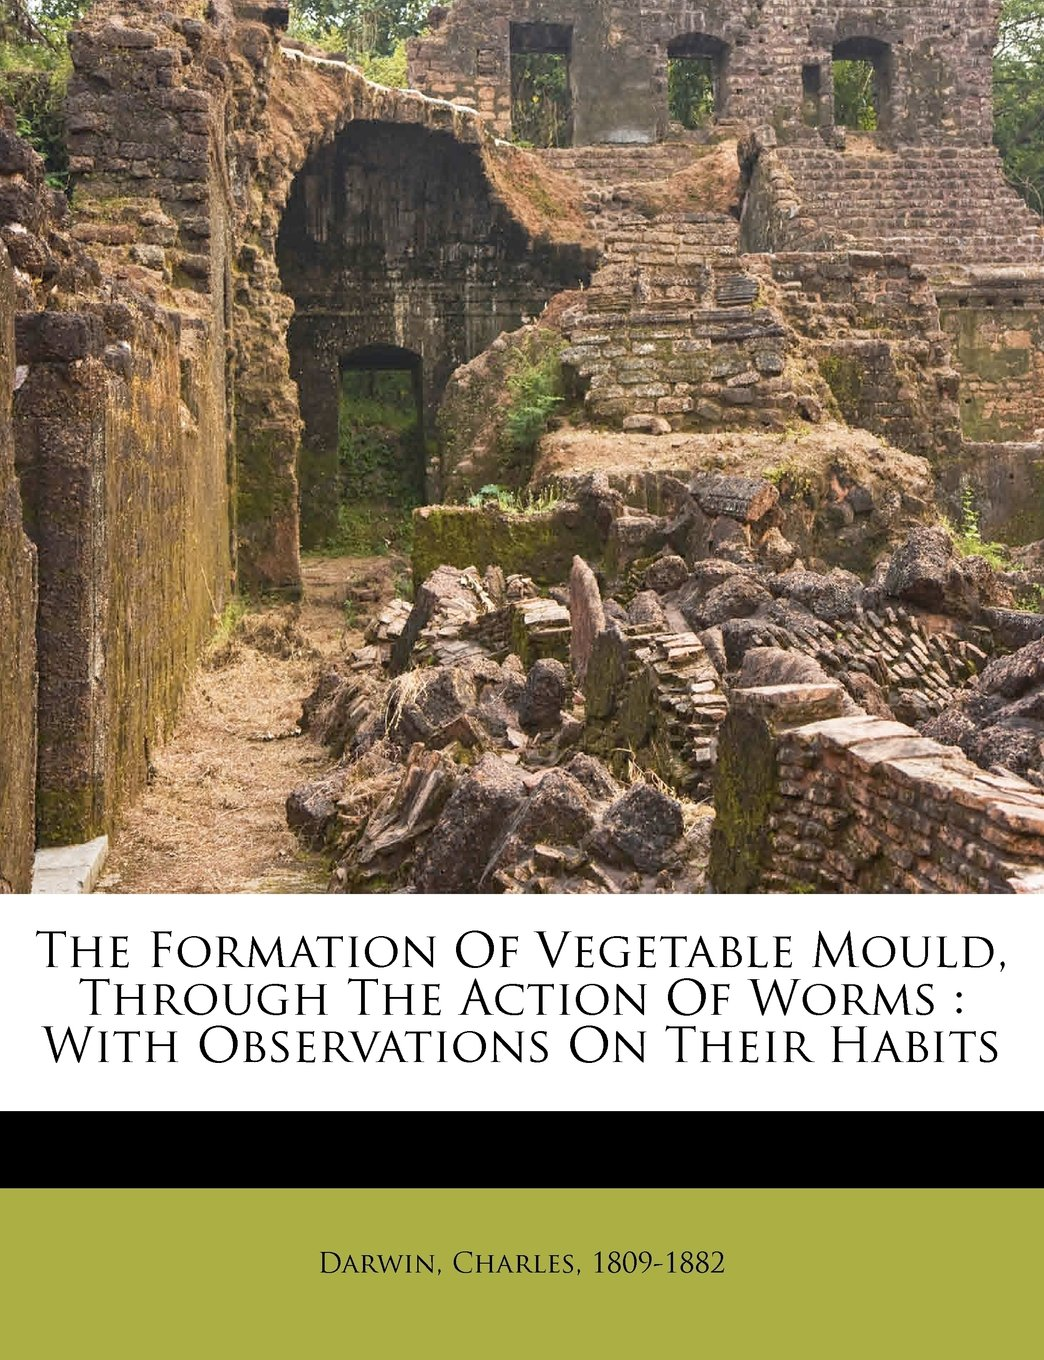 Download The Formation Of Vegetable Mould, Through The Action Of Worms: With Observations On Their Habits ebook